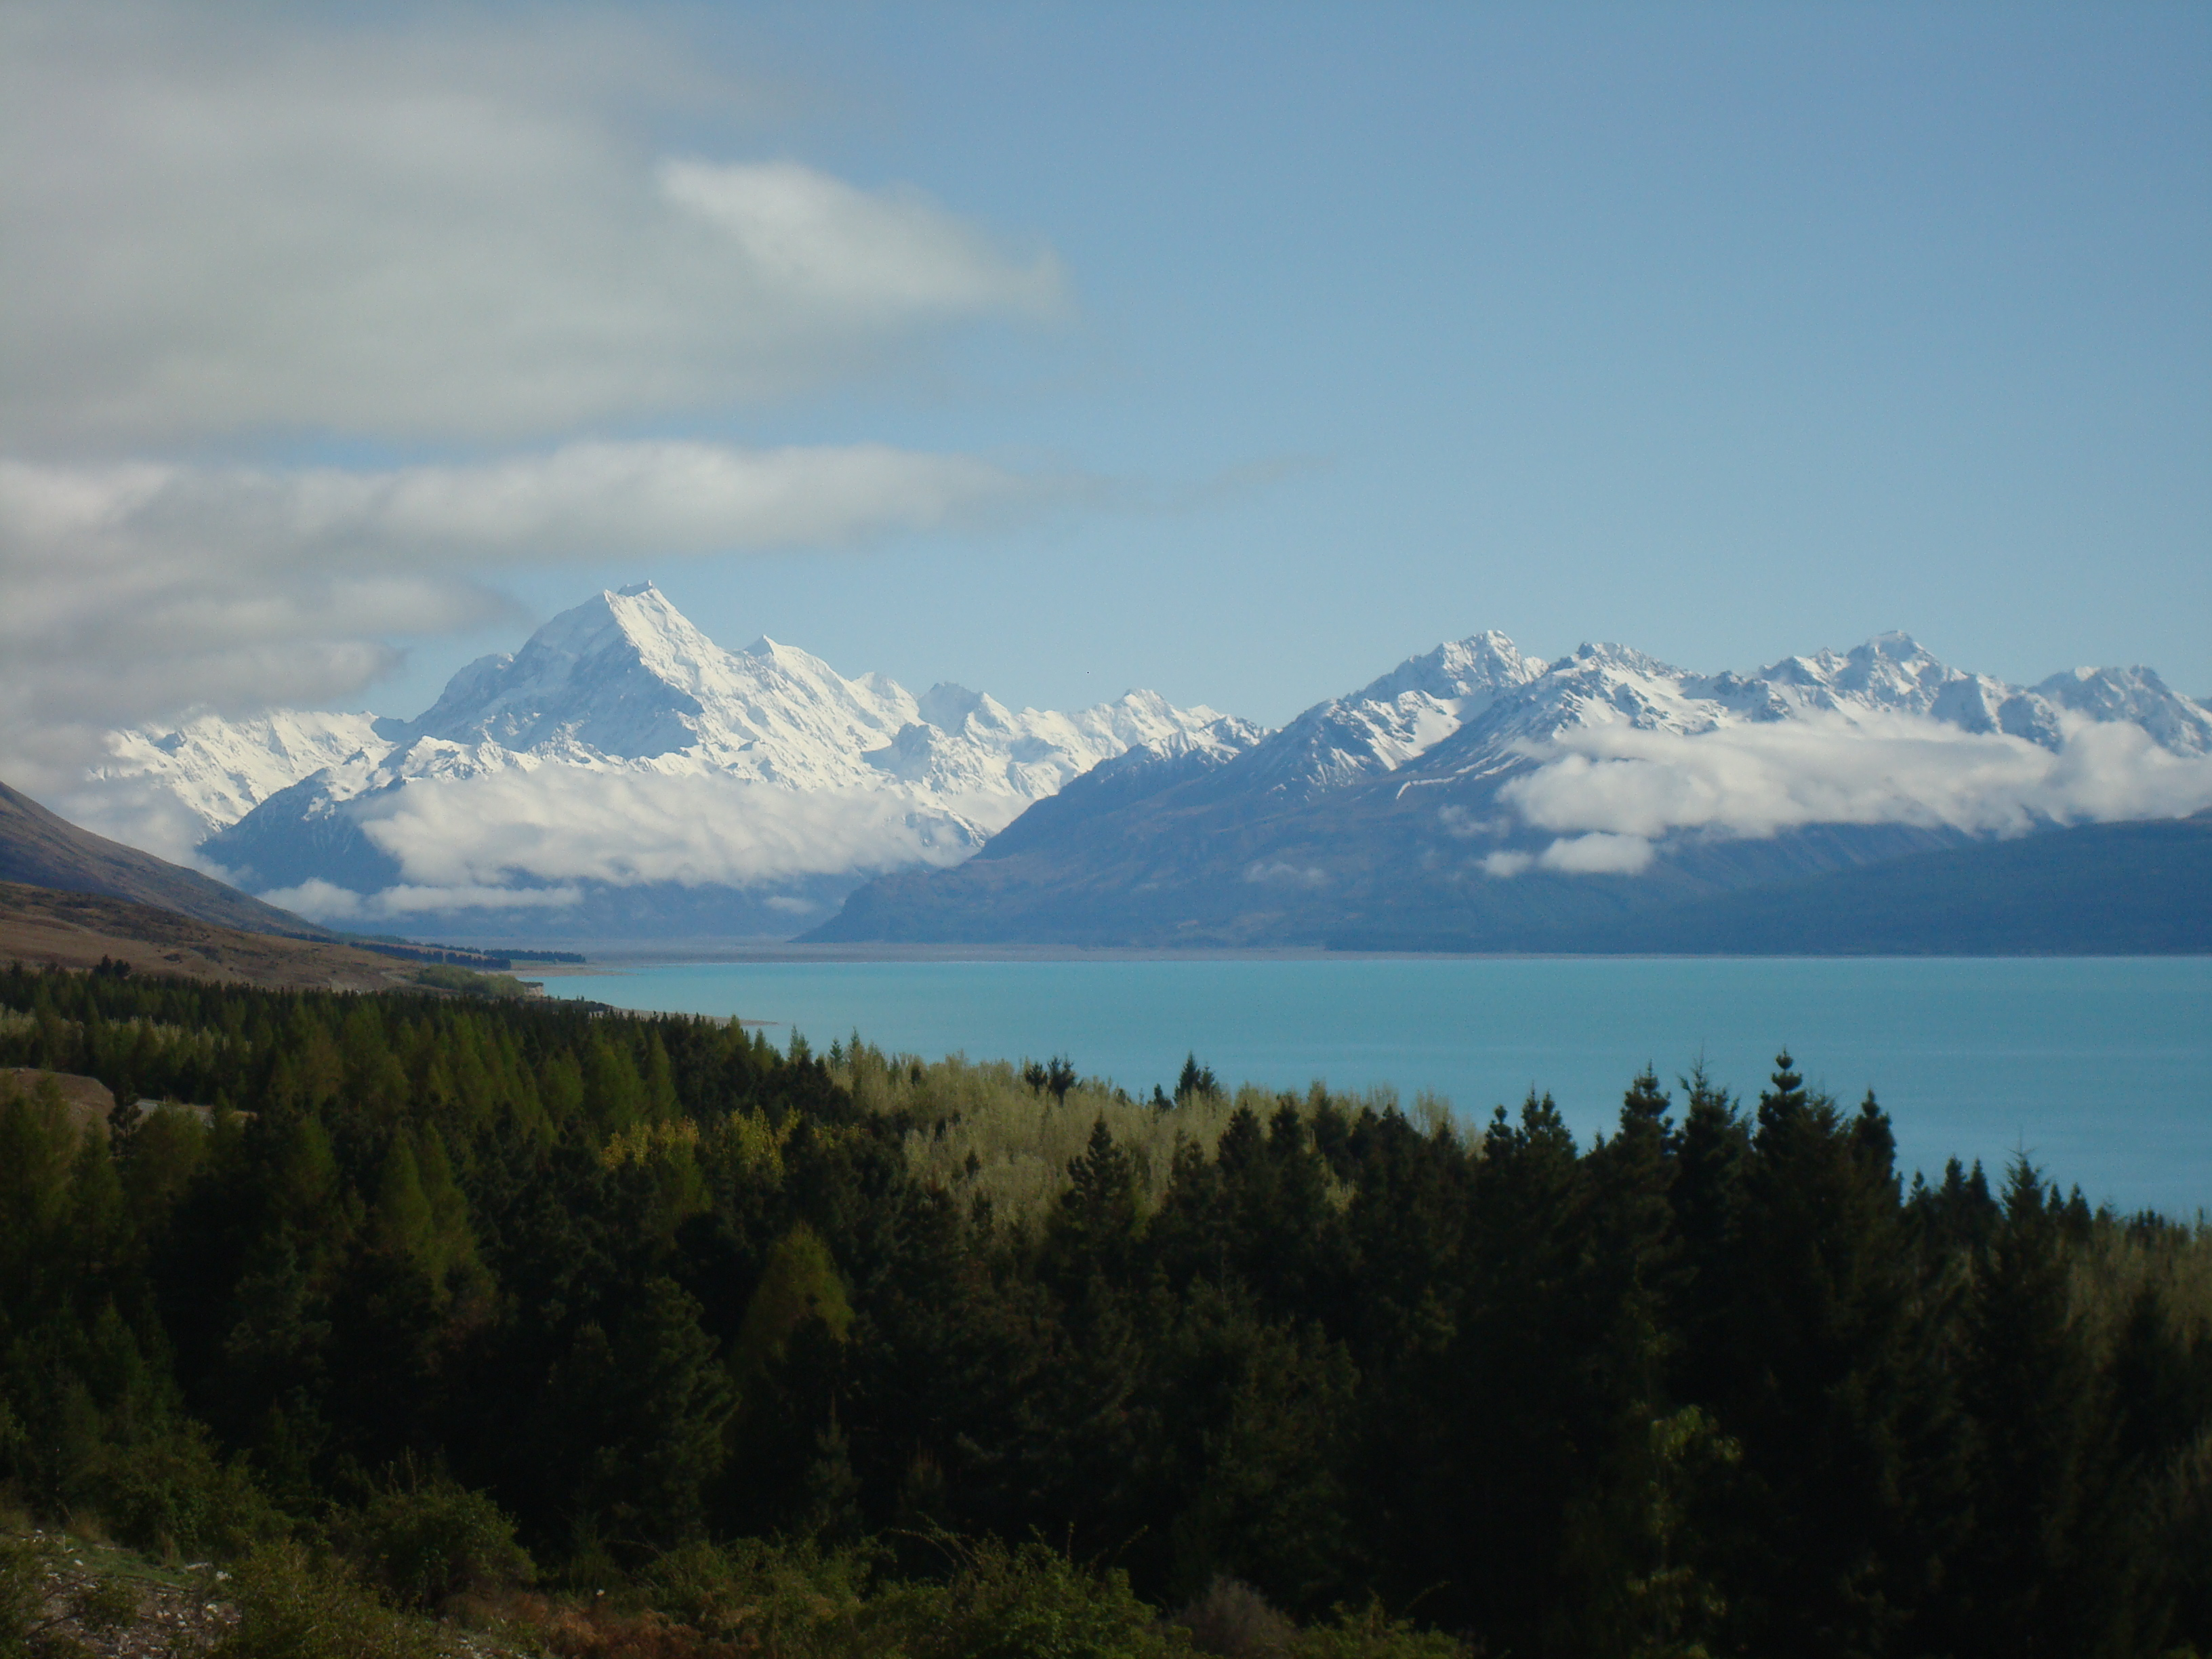 A distant Mt. Cook